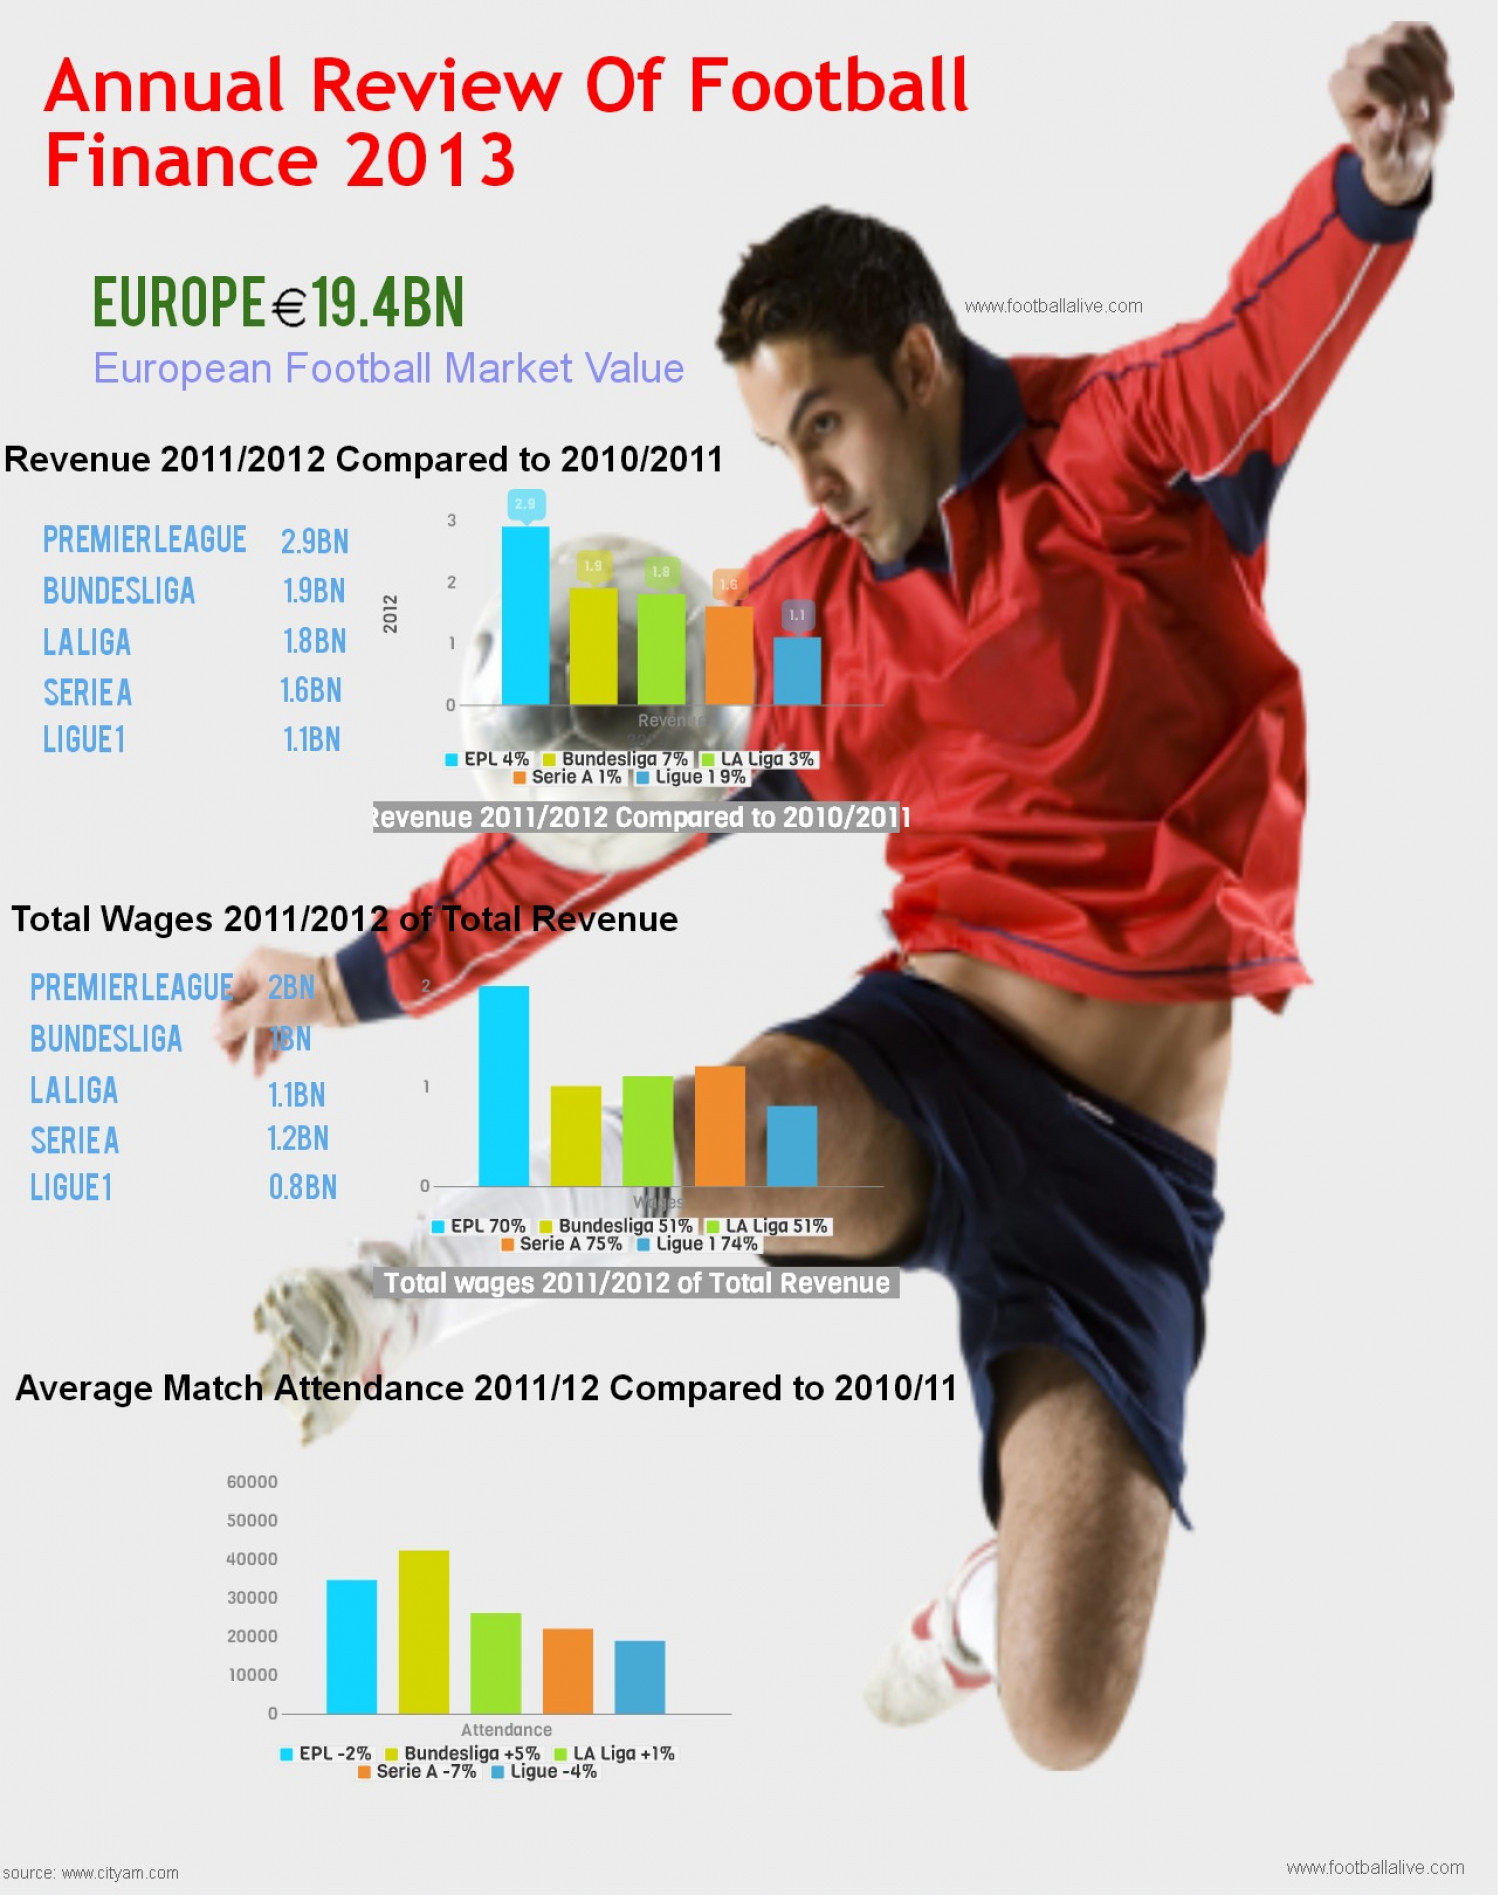 Annual Review of Football Finance 2013 Infographic